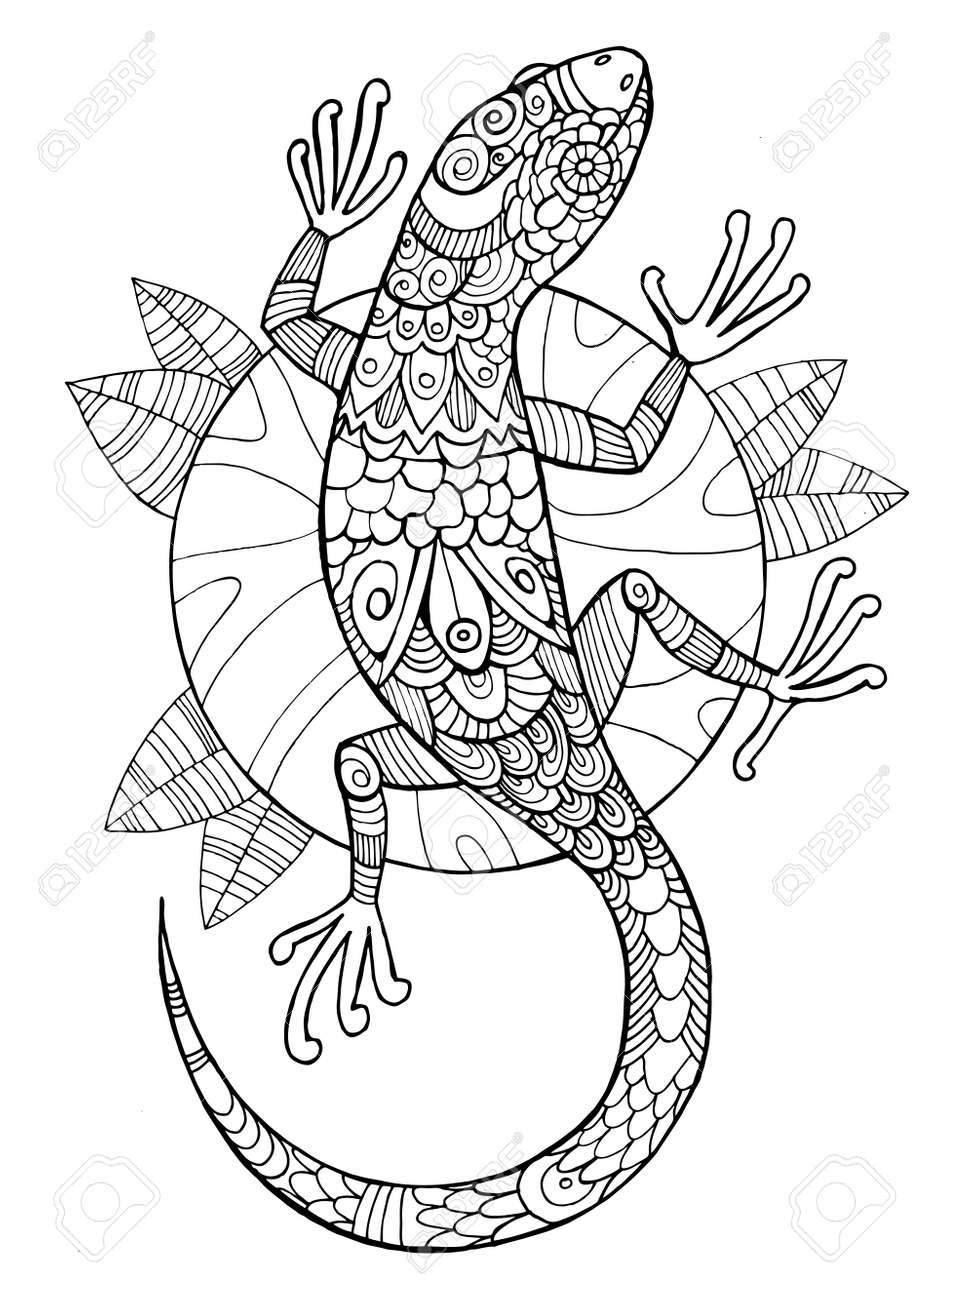 lizard coloring book for adults vector illustration. Anti-stress..